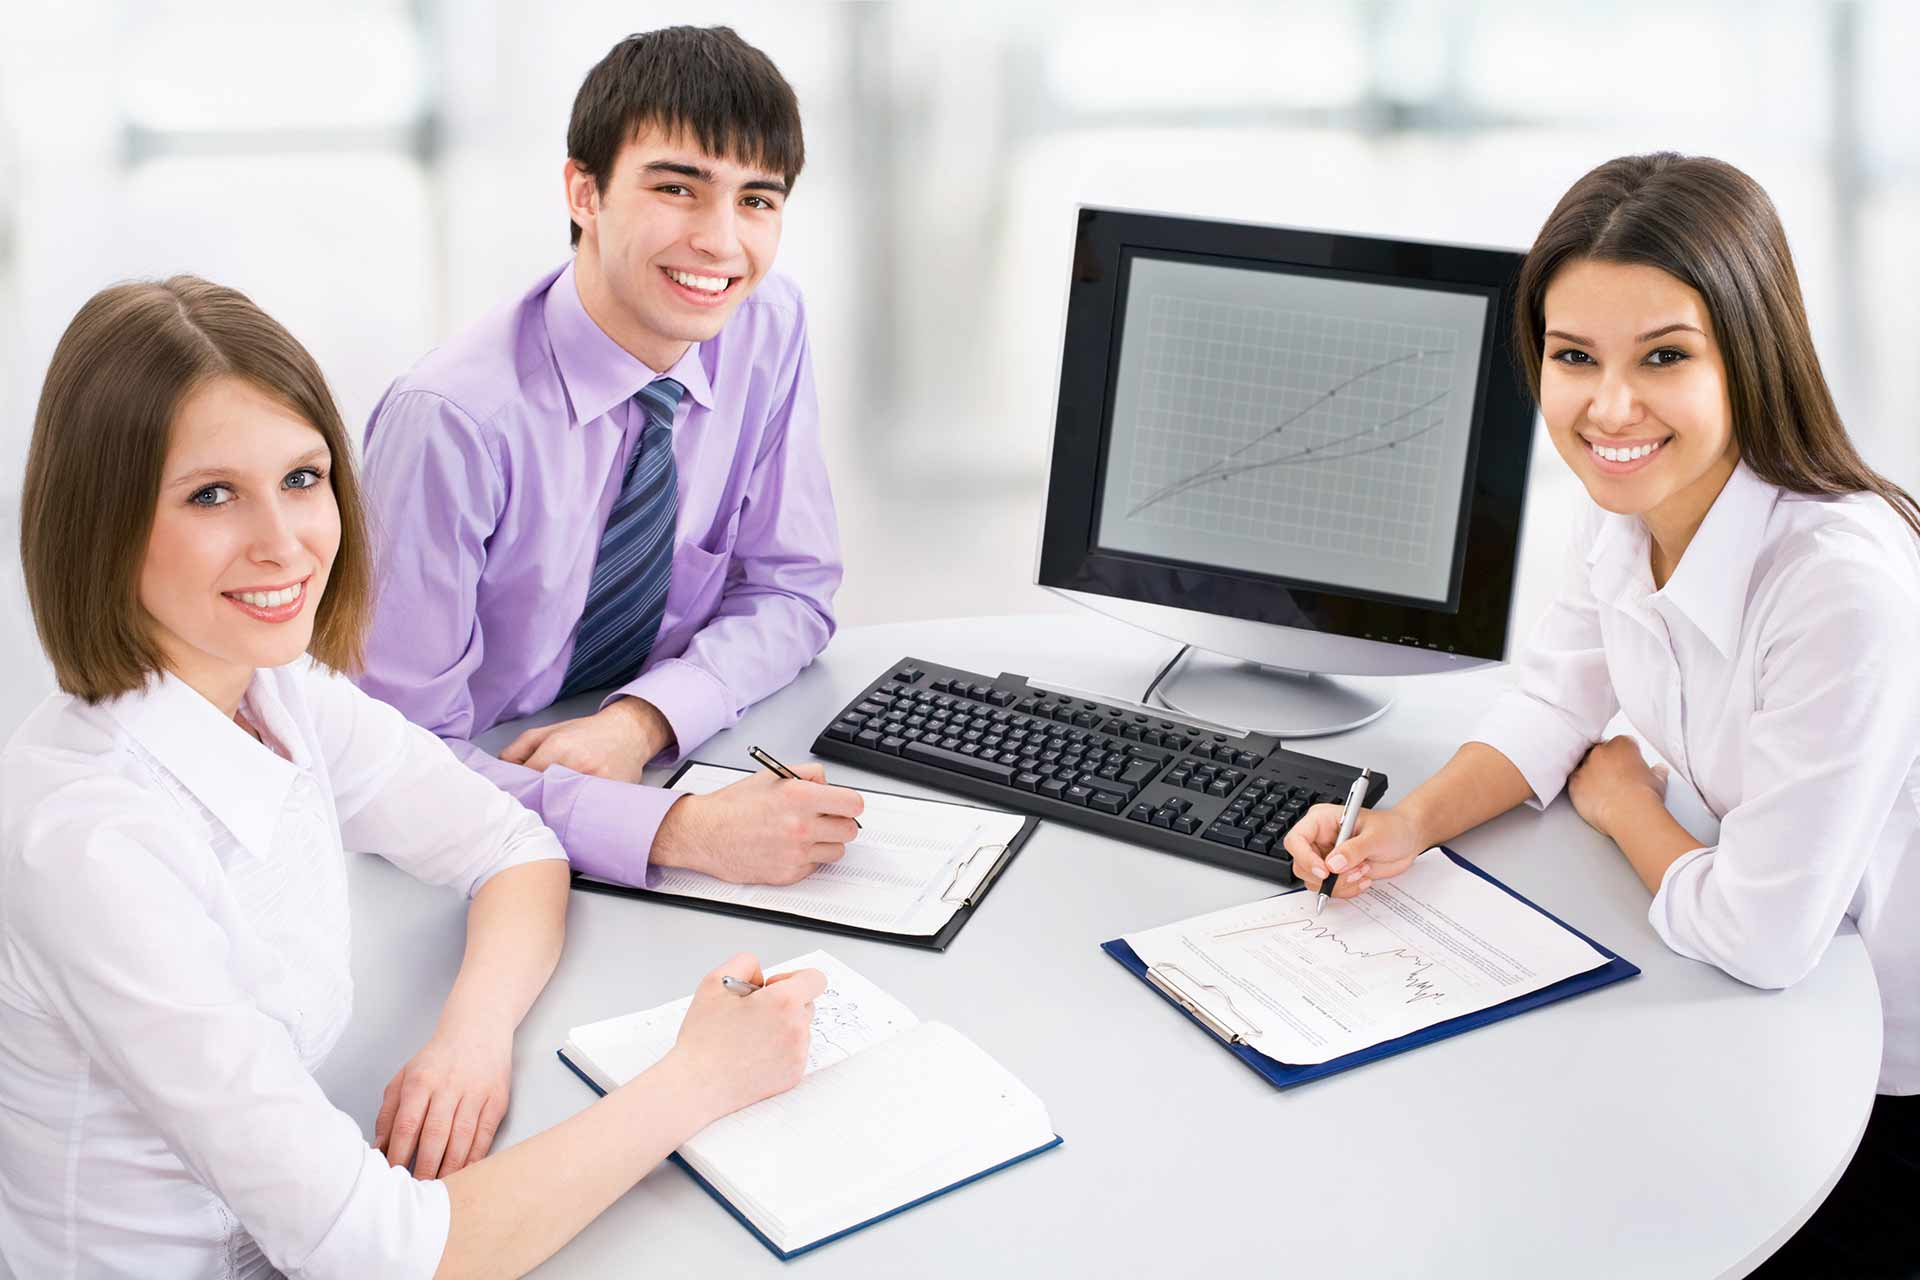 post single image Post Single Image Young business people are working together at office